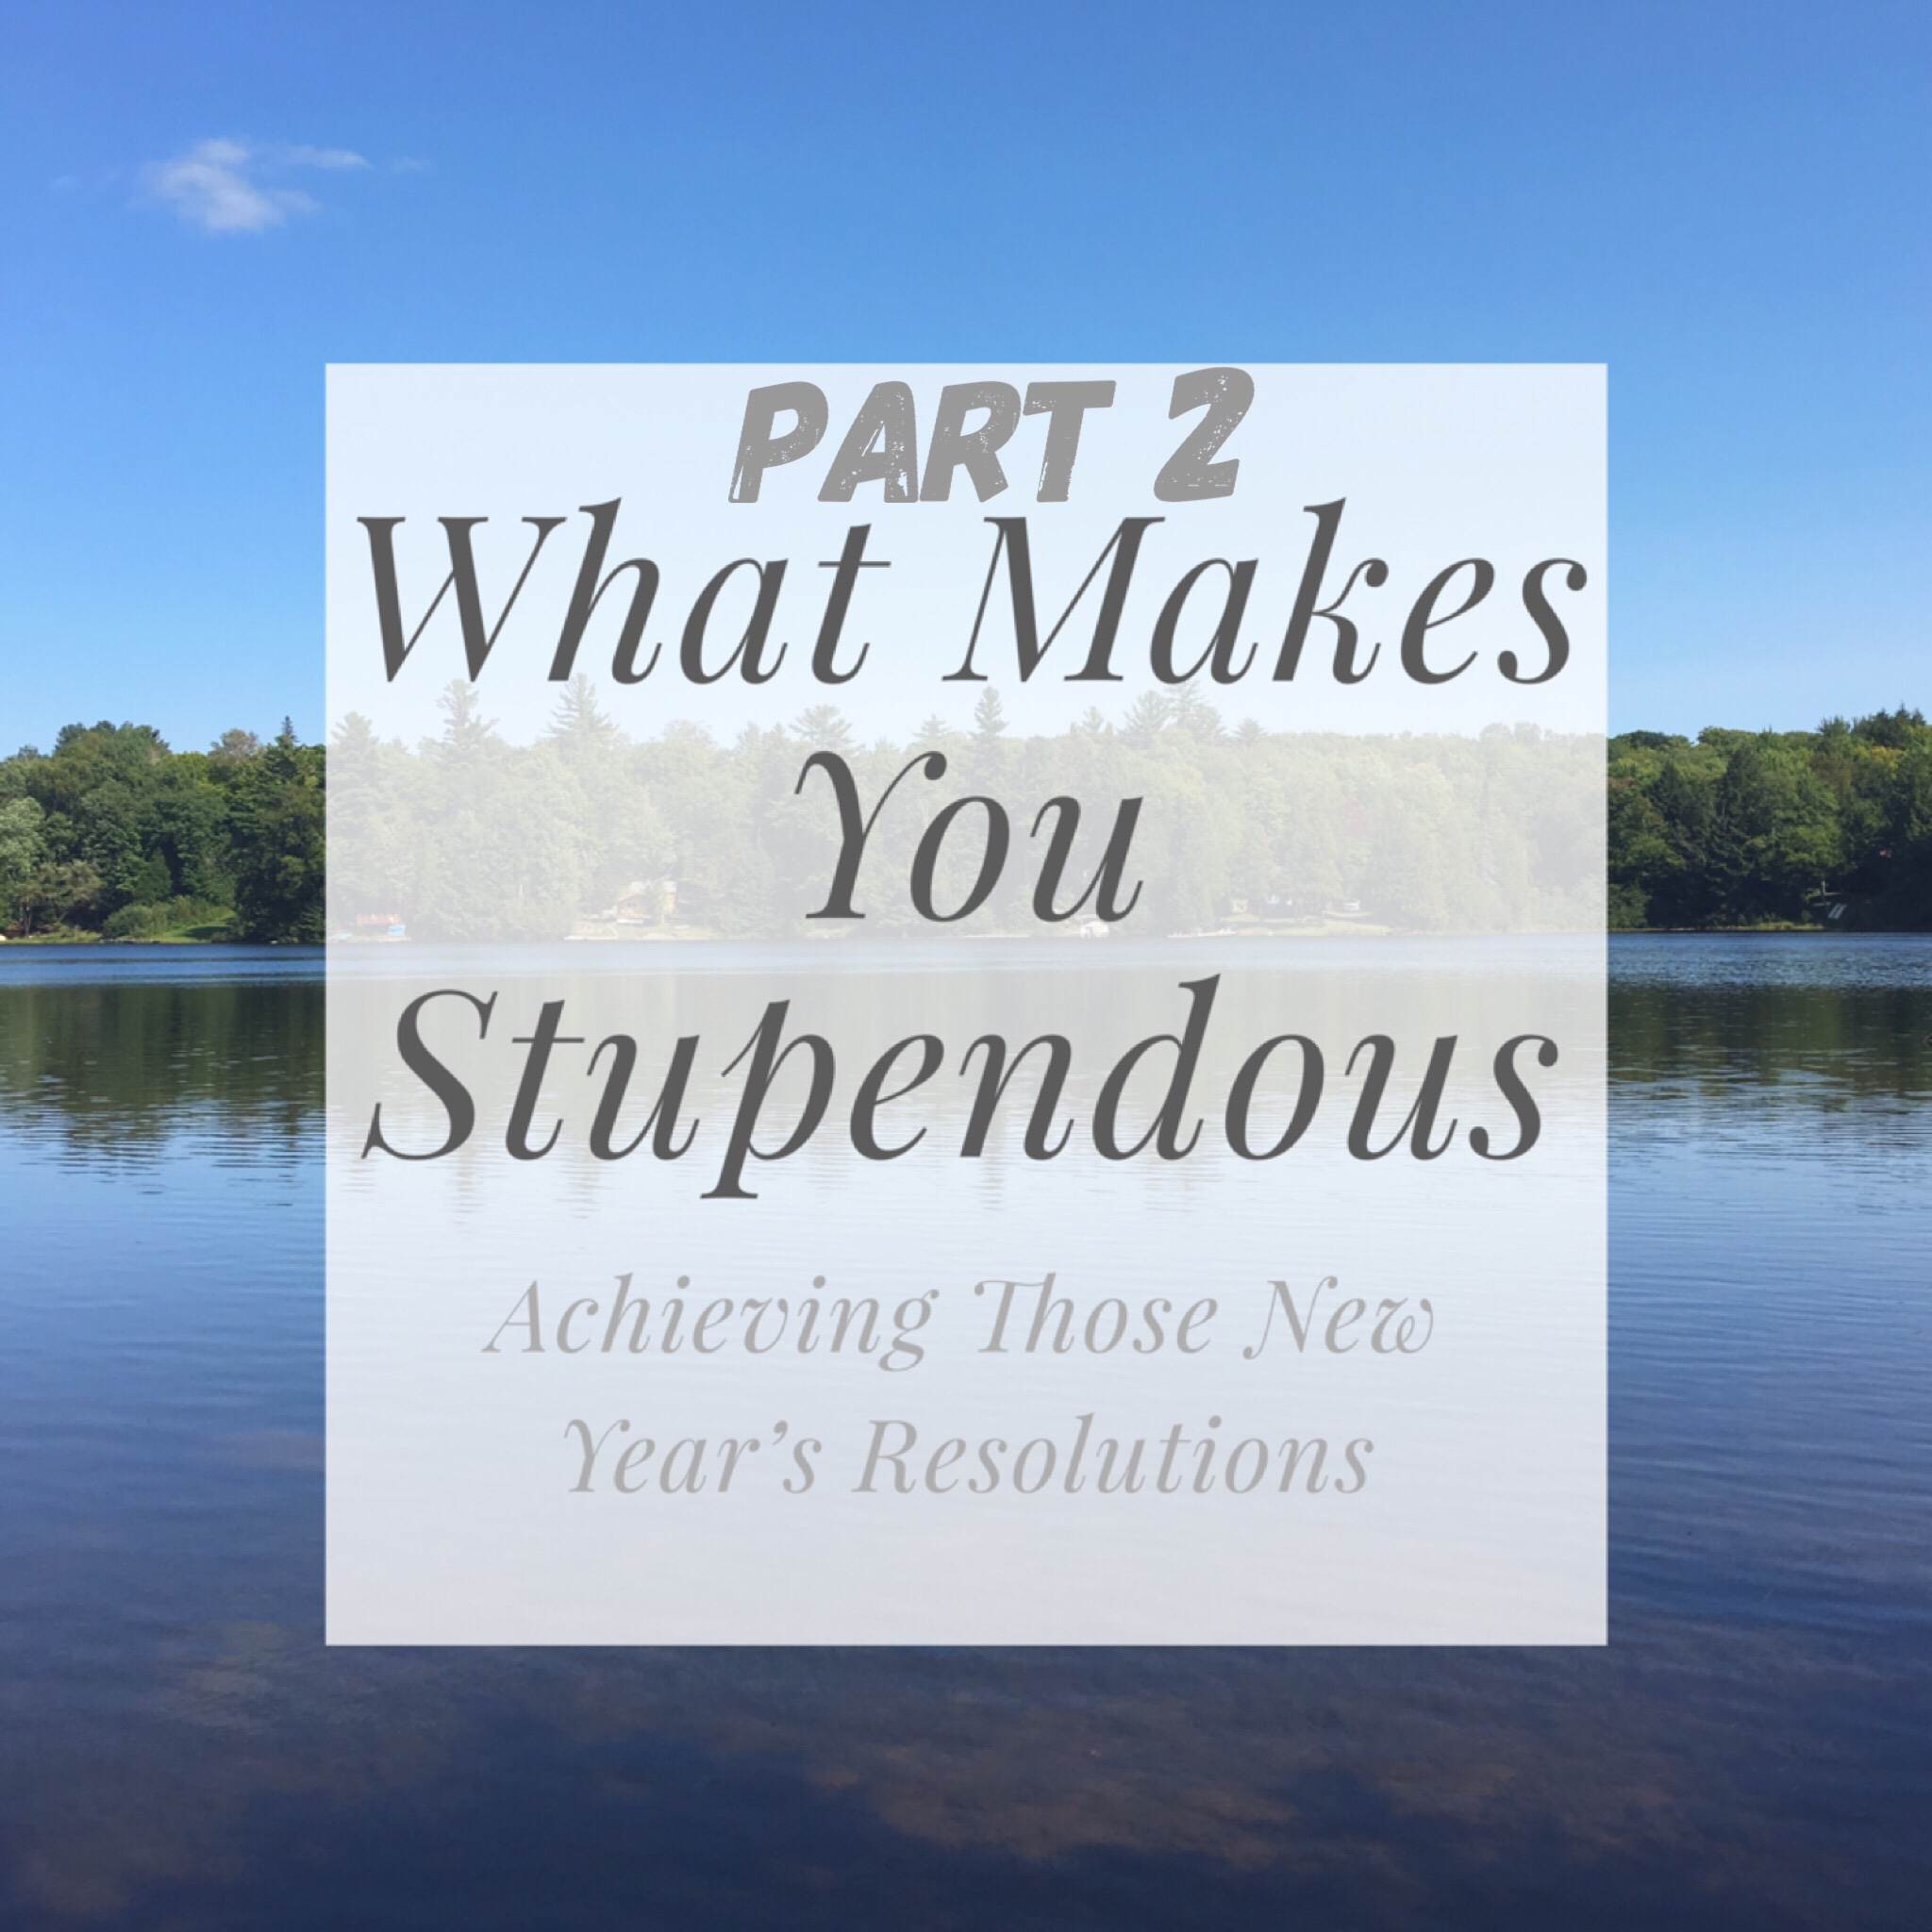 What Makes You Stupendous – Achieving Those New Year's Resolutions Part 2